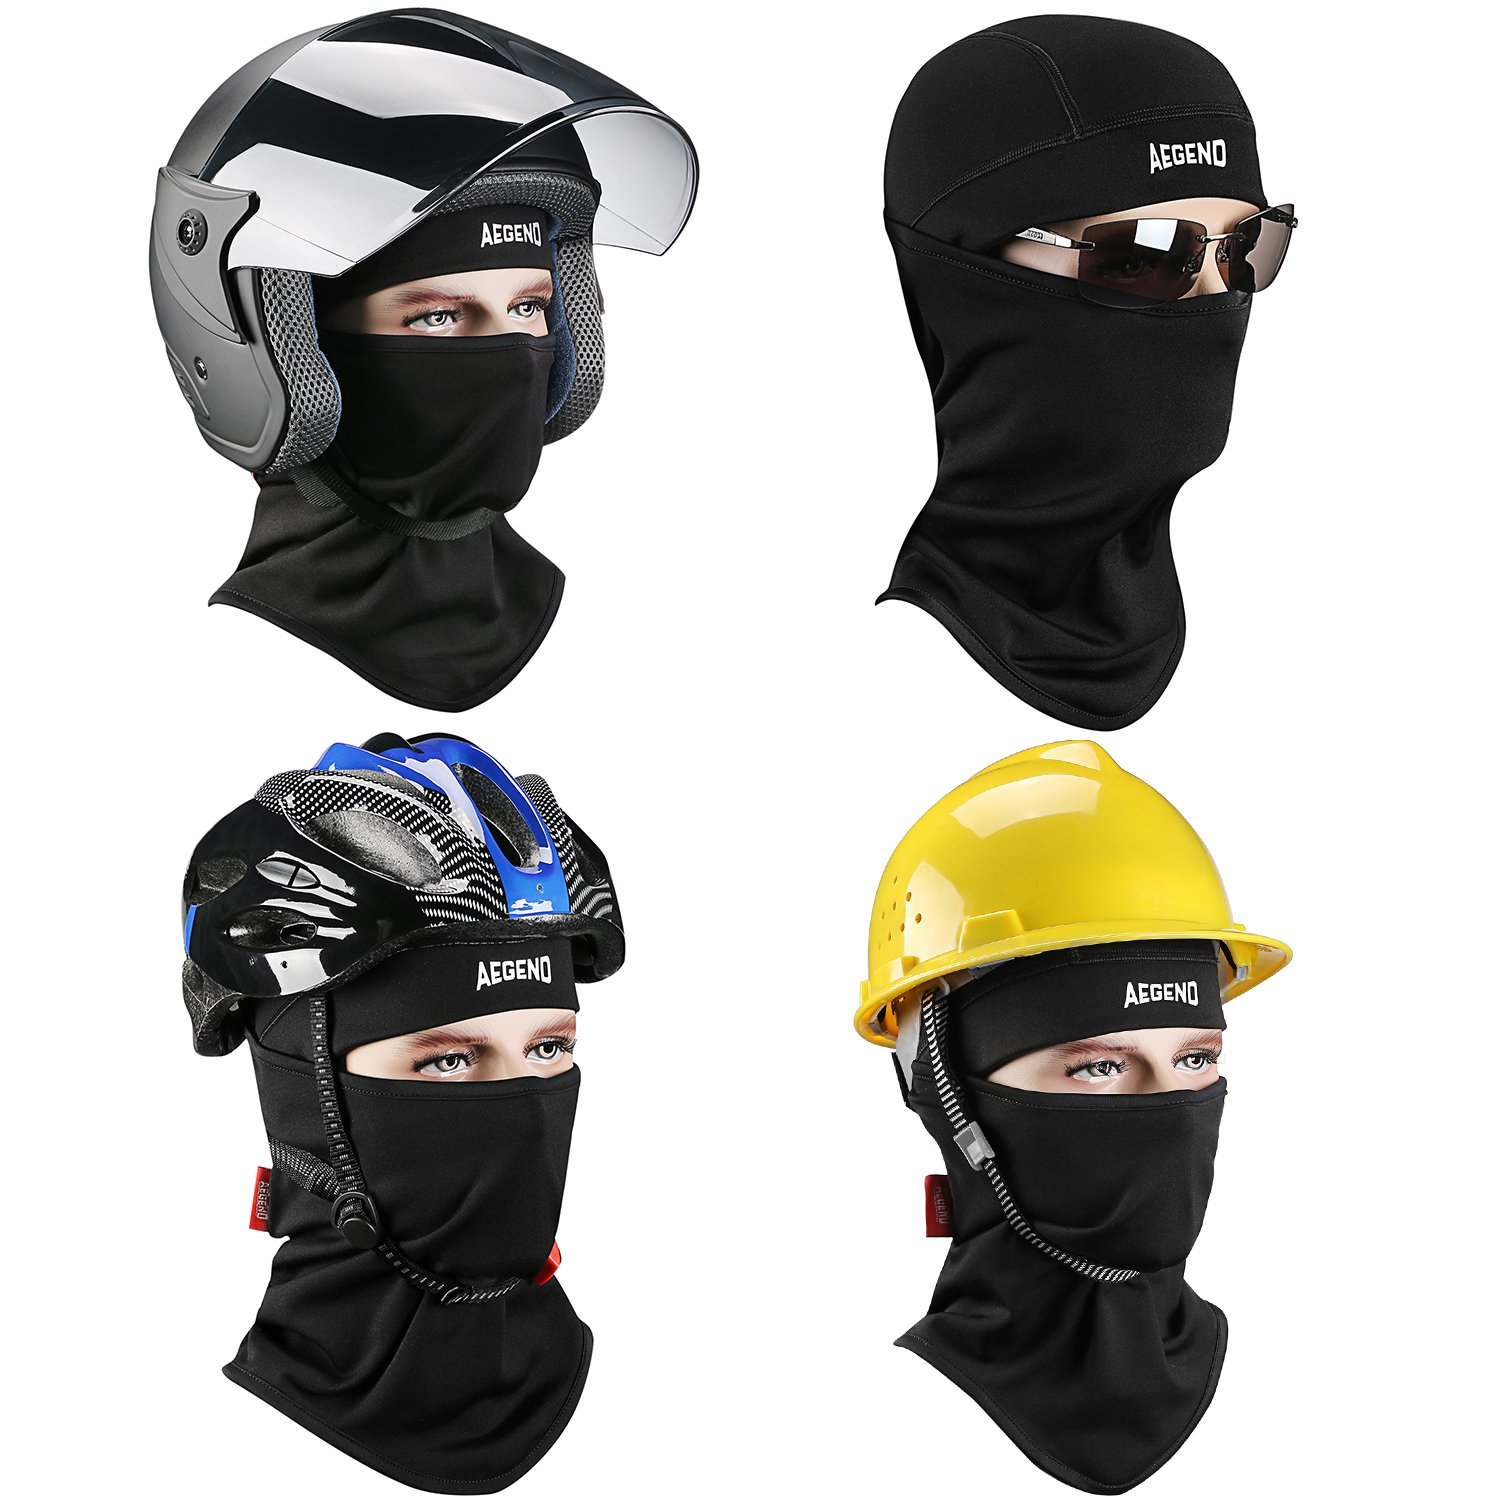 Full face mask neck warmer hood balaclava outdoor winter sports hats - Amazon Com Balaclava Aegend Ski Face Mask Polyester Fleece For Women Men Youth Tactical Balaclava Hood For Motorcycle Snowboard Cycling Outdoors In Winter